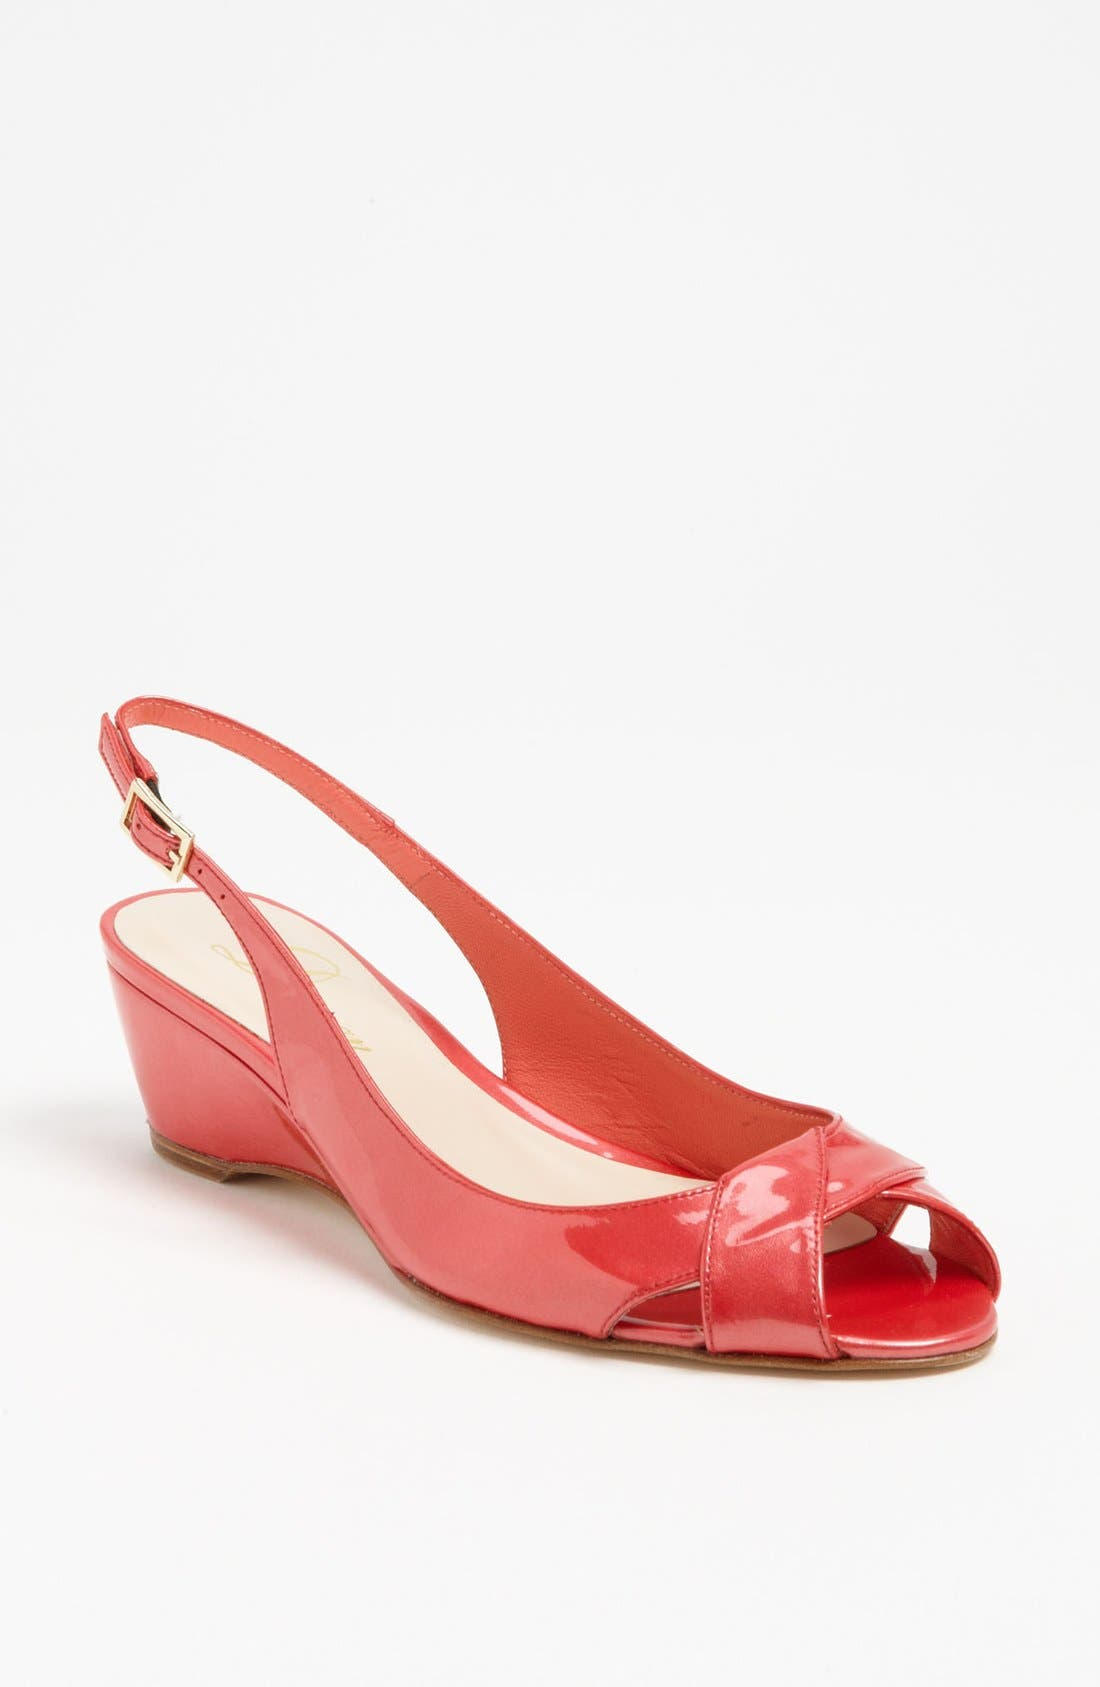 Alternate Image 1 Selected - Delman 'Calla' Sandal (Nordstrom Exclusive)